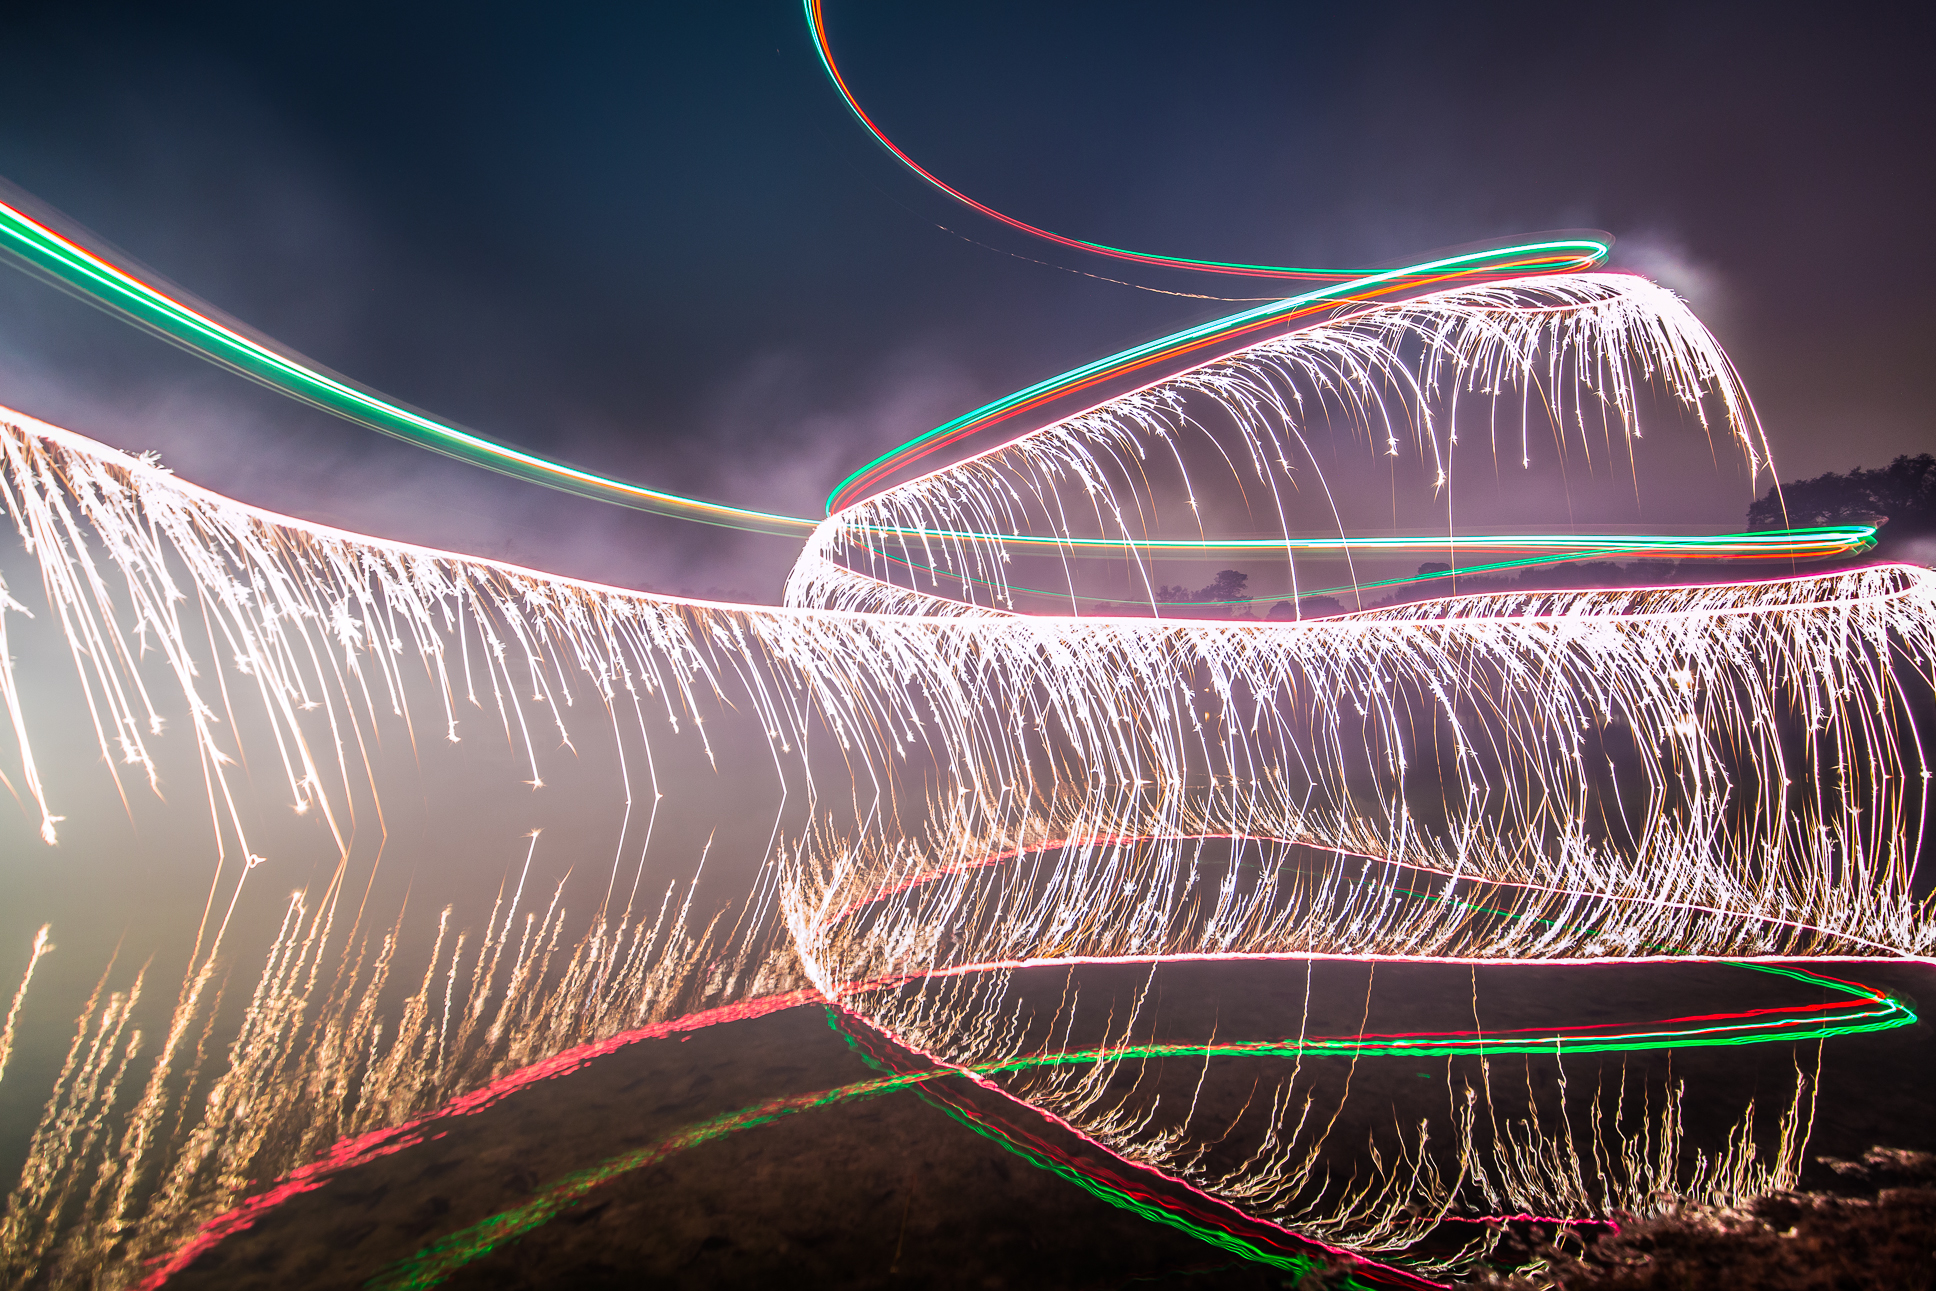 16 - Long exposure photo of a drone flying around with fireworks attached underneath